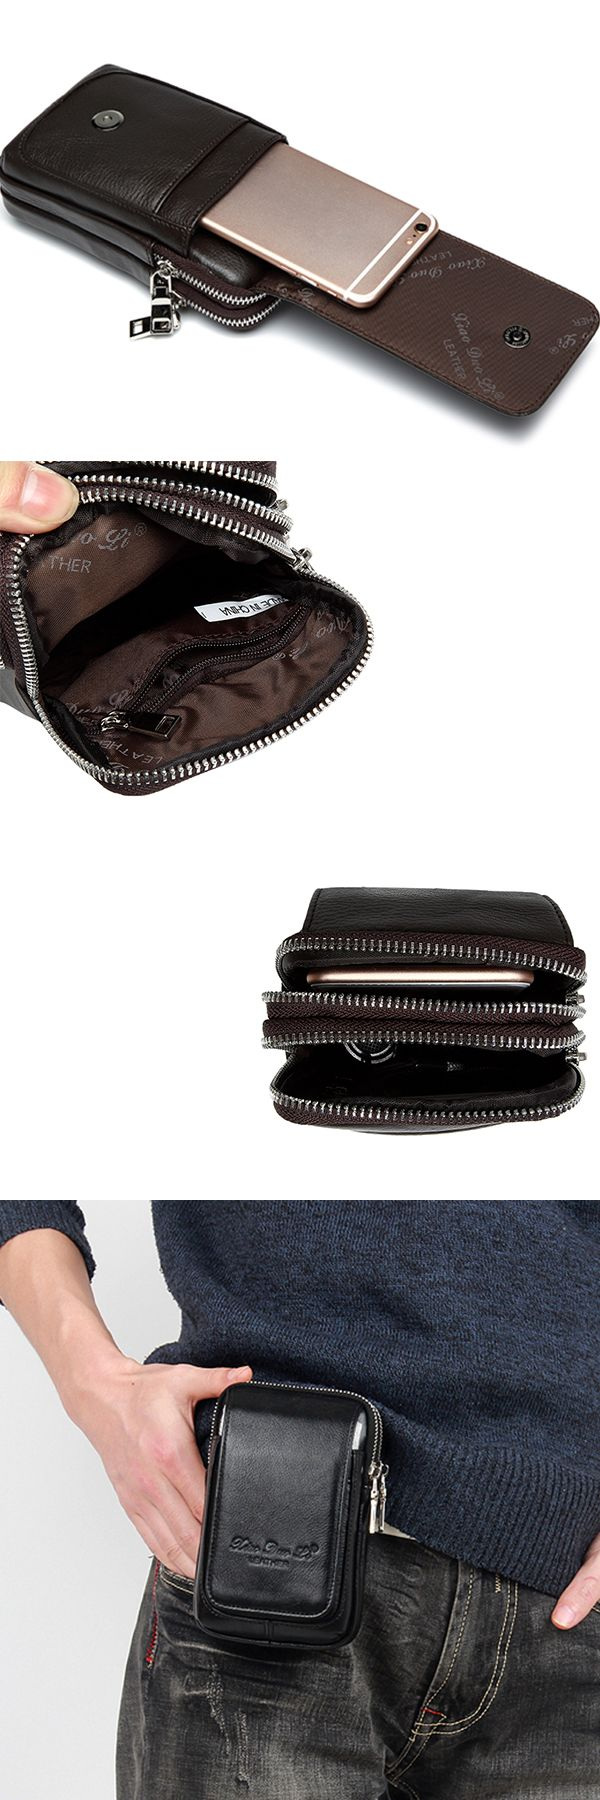 190 Best Rucsacuri Genti Images On Pinterest Backpacks Cross Supreme Cellular Multipurpose Backpack Genuine Leather Multi Function Fanny Waist Bag Belt Bum Pouch Phone Coin Purse For Men